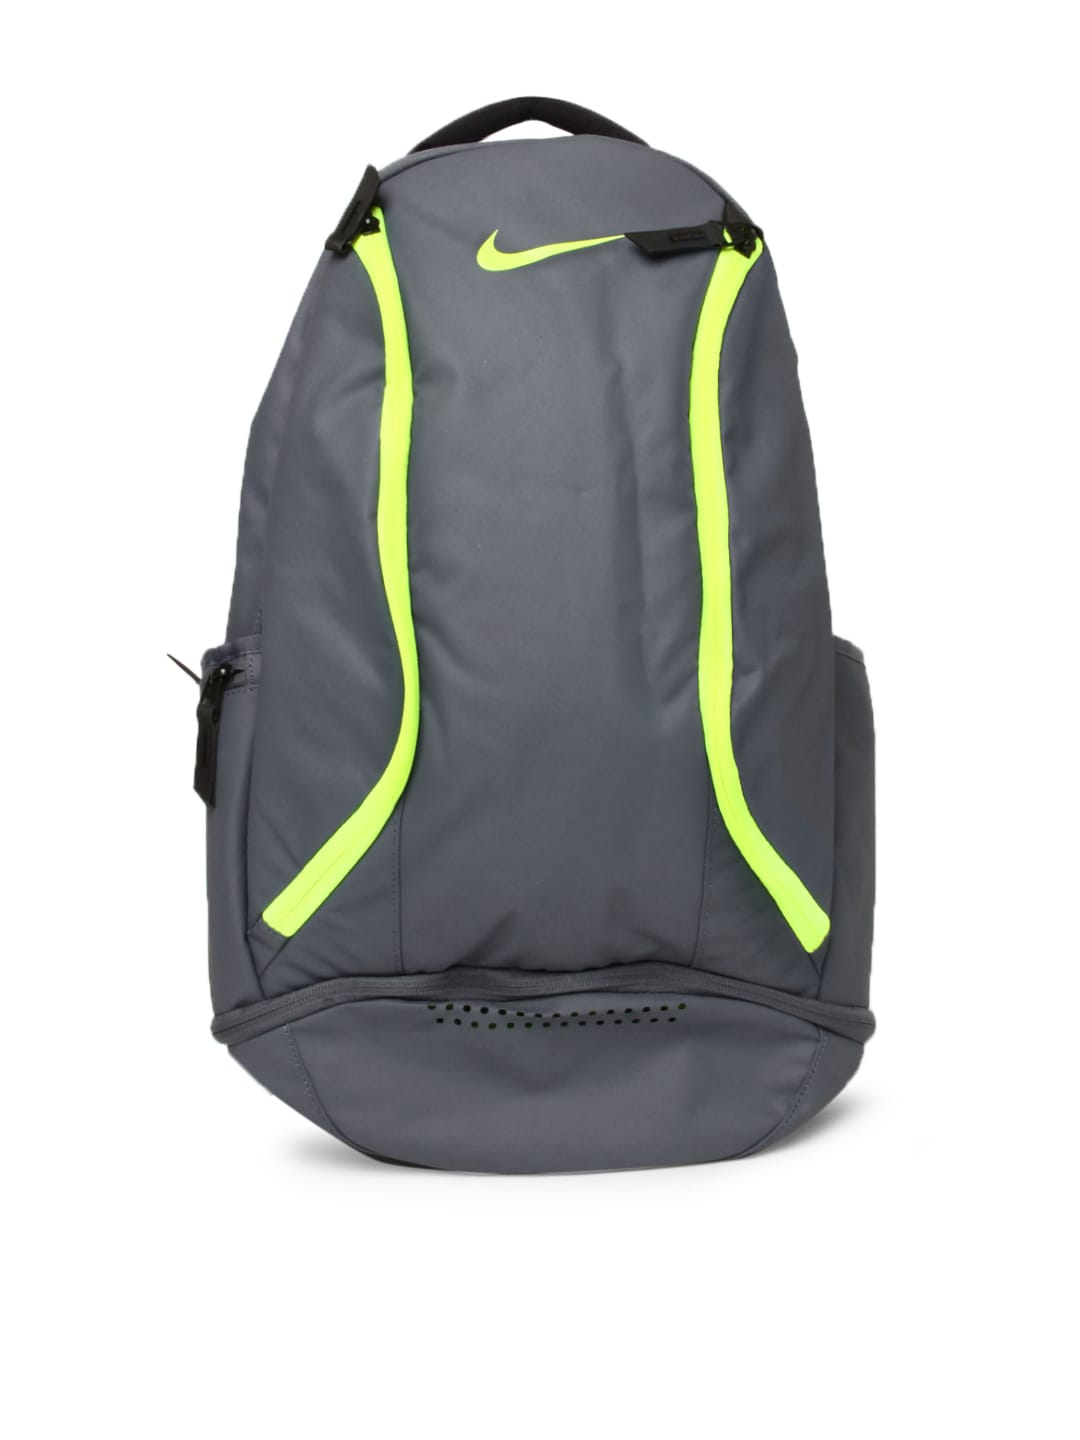 Nike ba4603-463 Men Grey Ultimatum Max Air Gear Backpack- Price in India 6a5f29b4f15fe